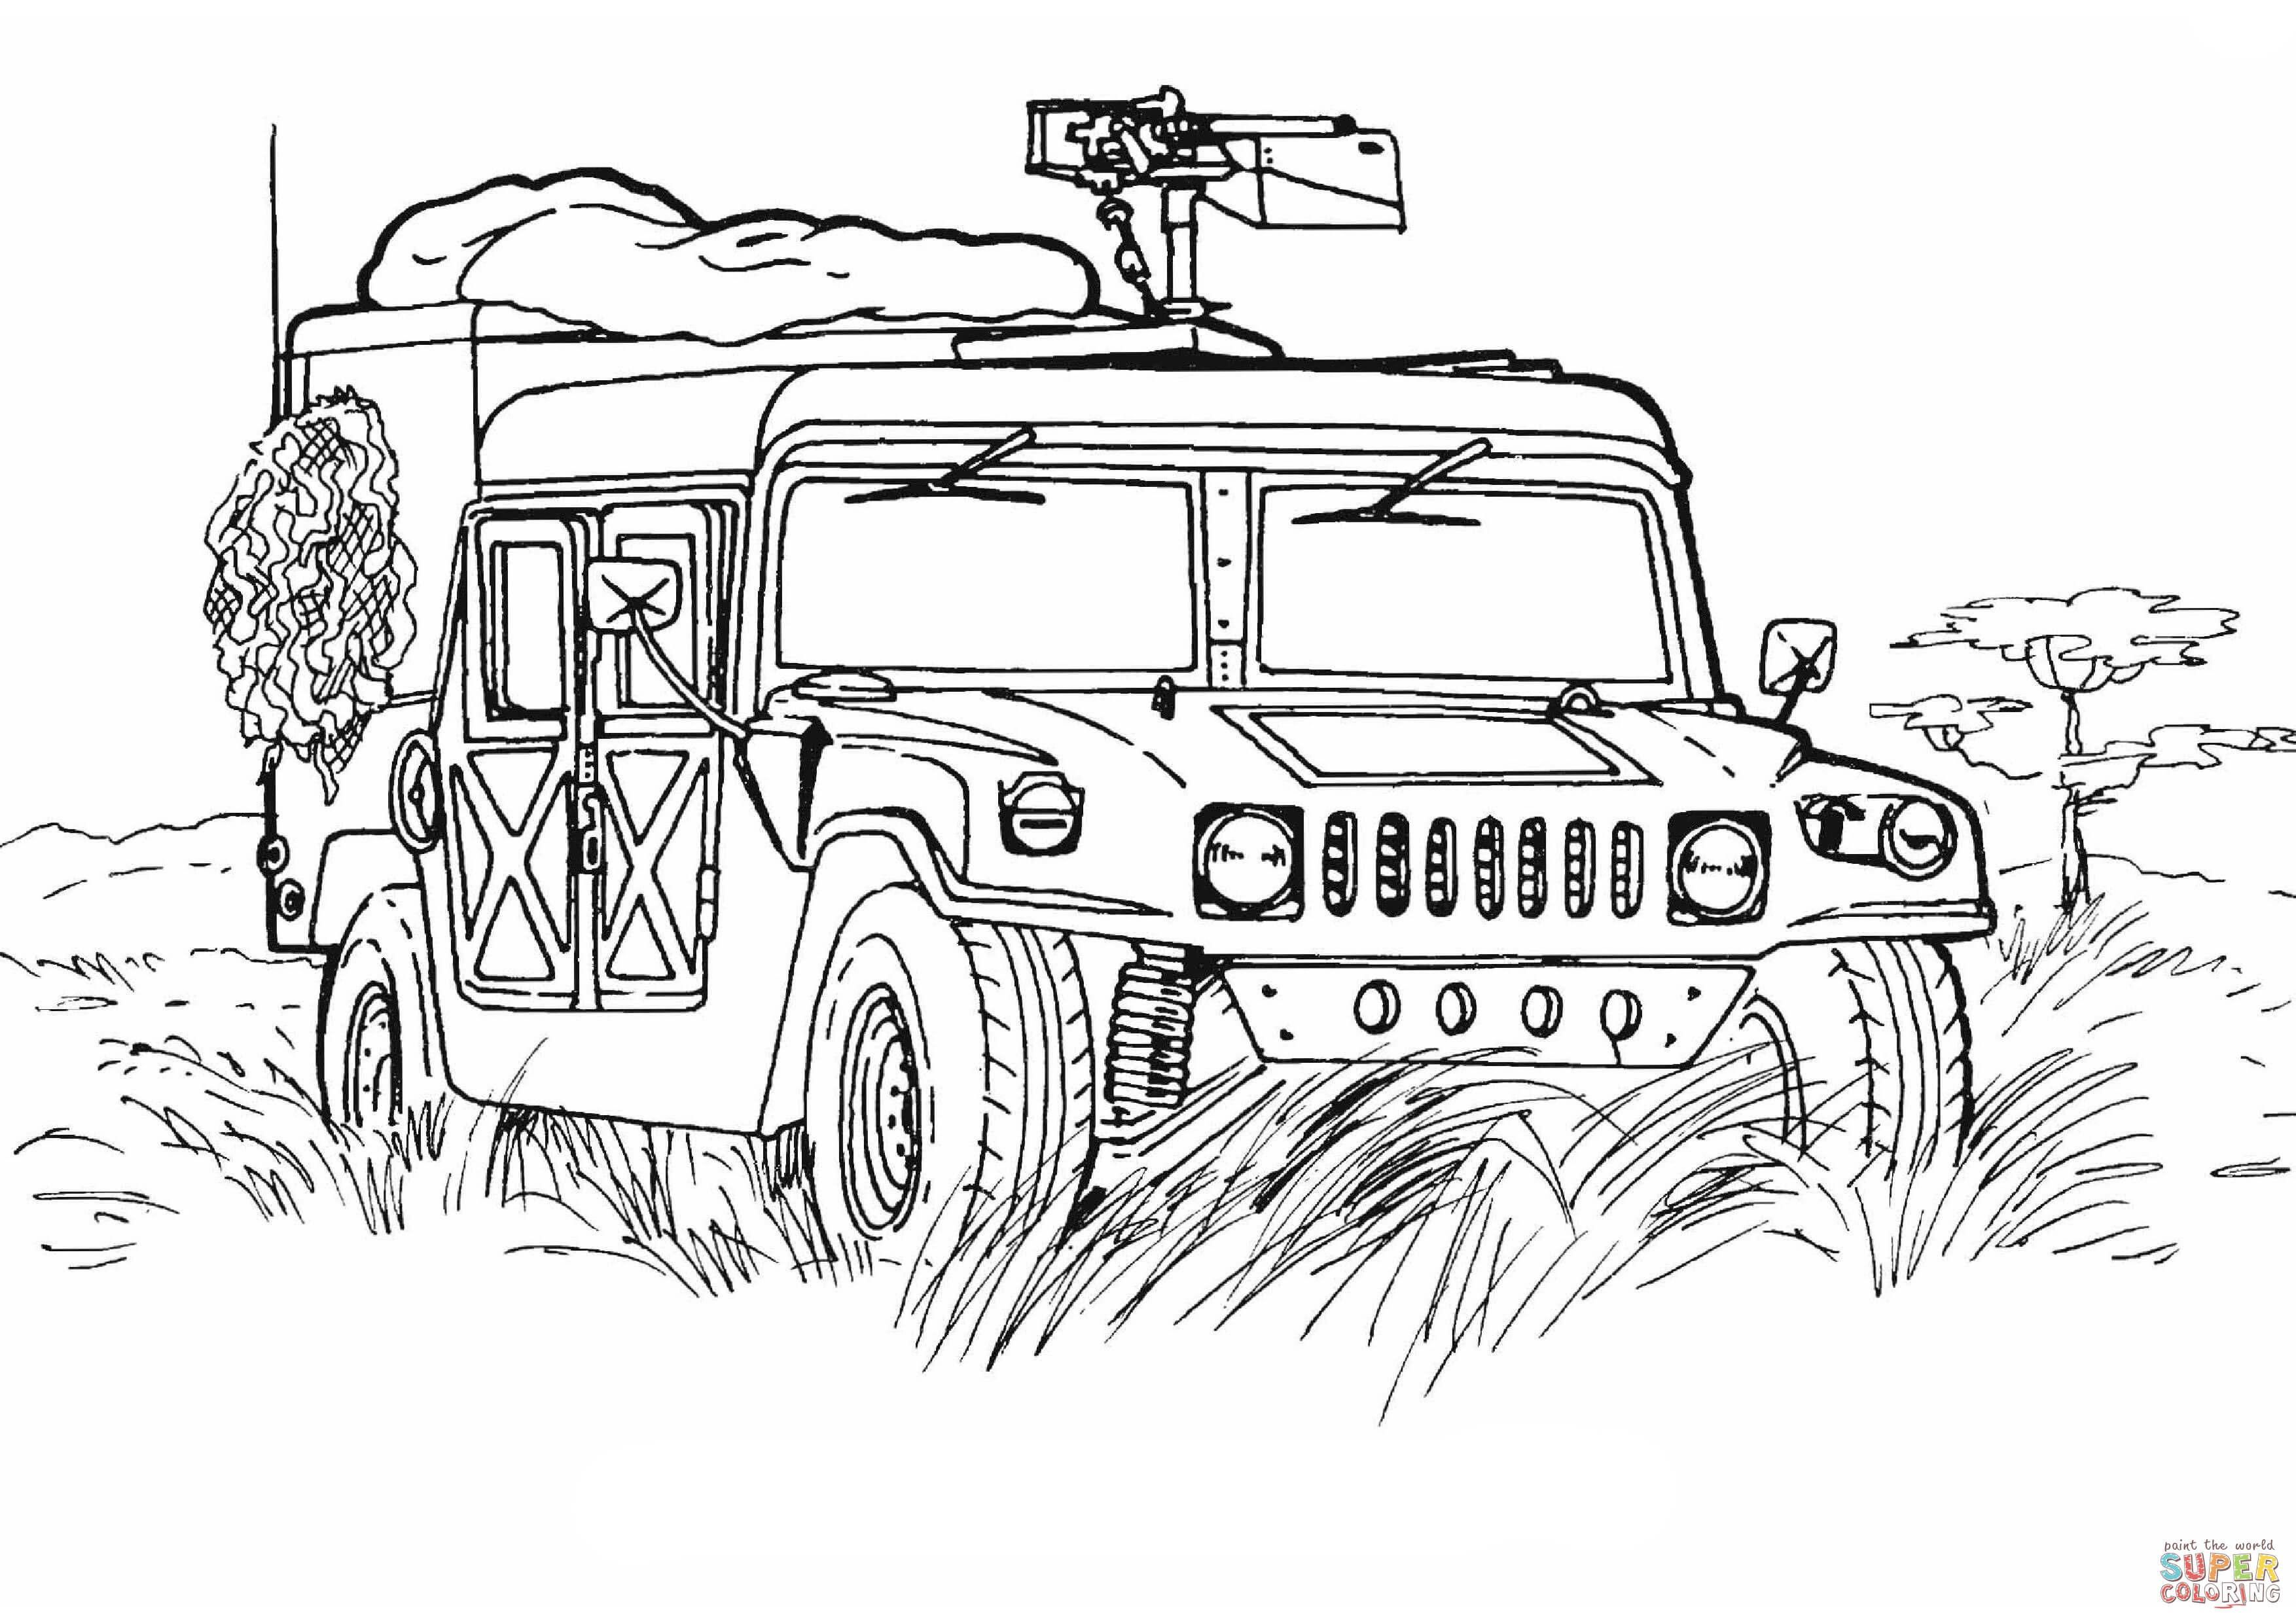 Awesome Coloring Pages Army That You Must Know You Re In Good